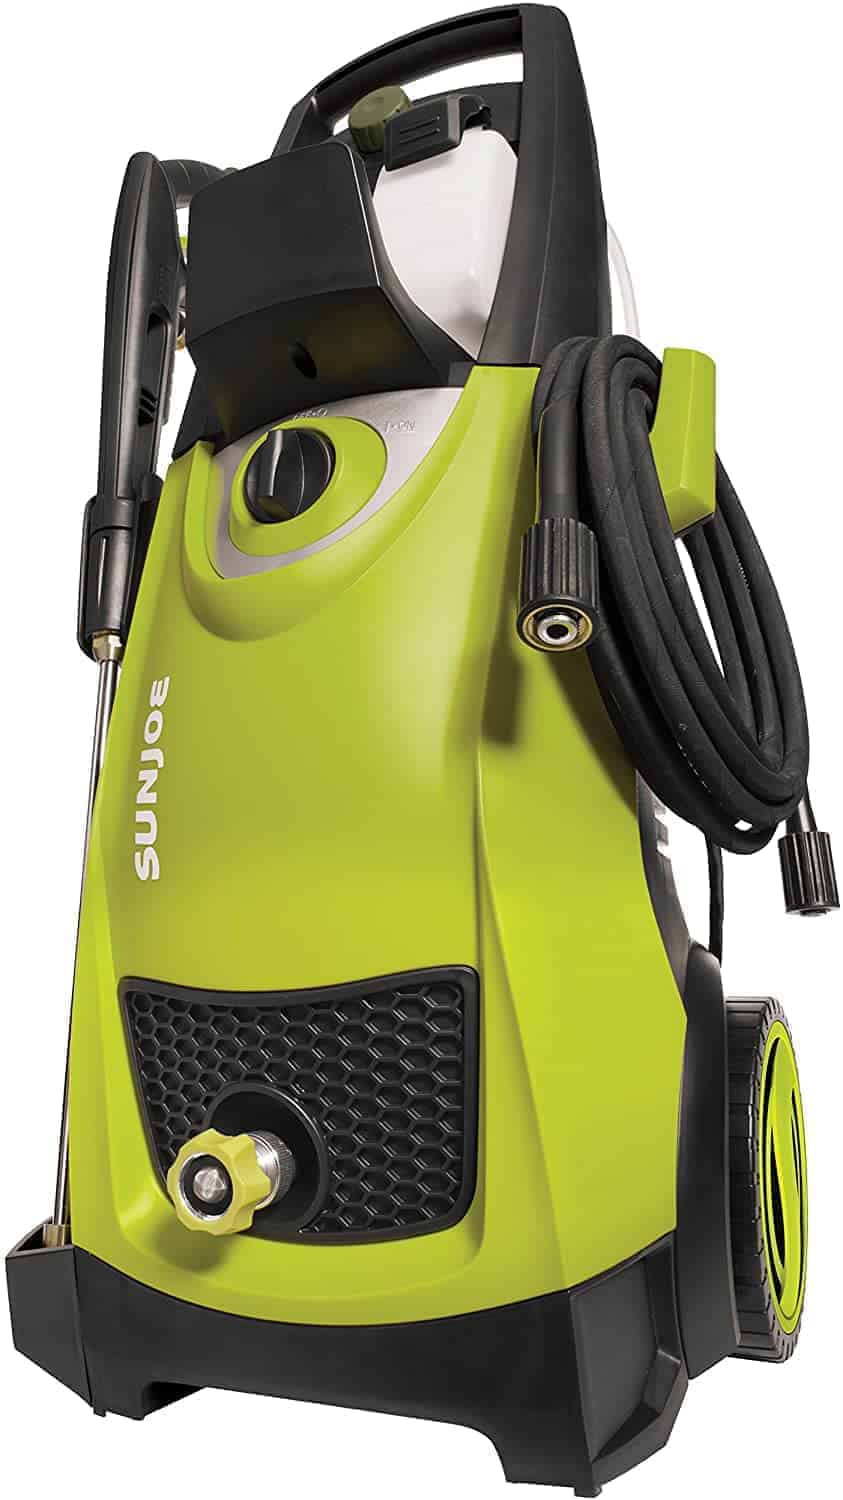 Power-Washer-Fathers-Day-Gift-Ideas